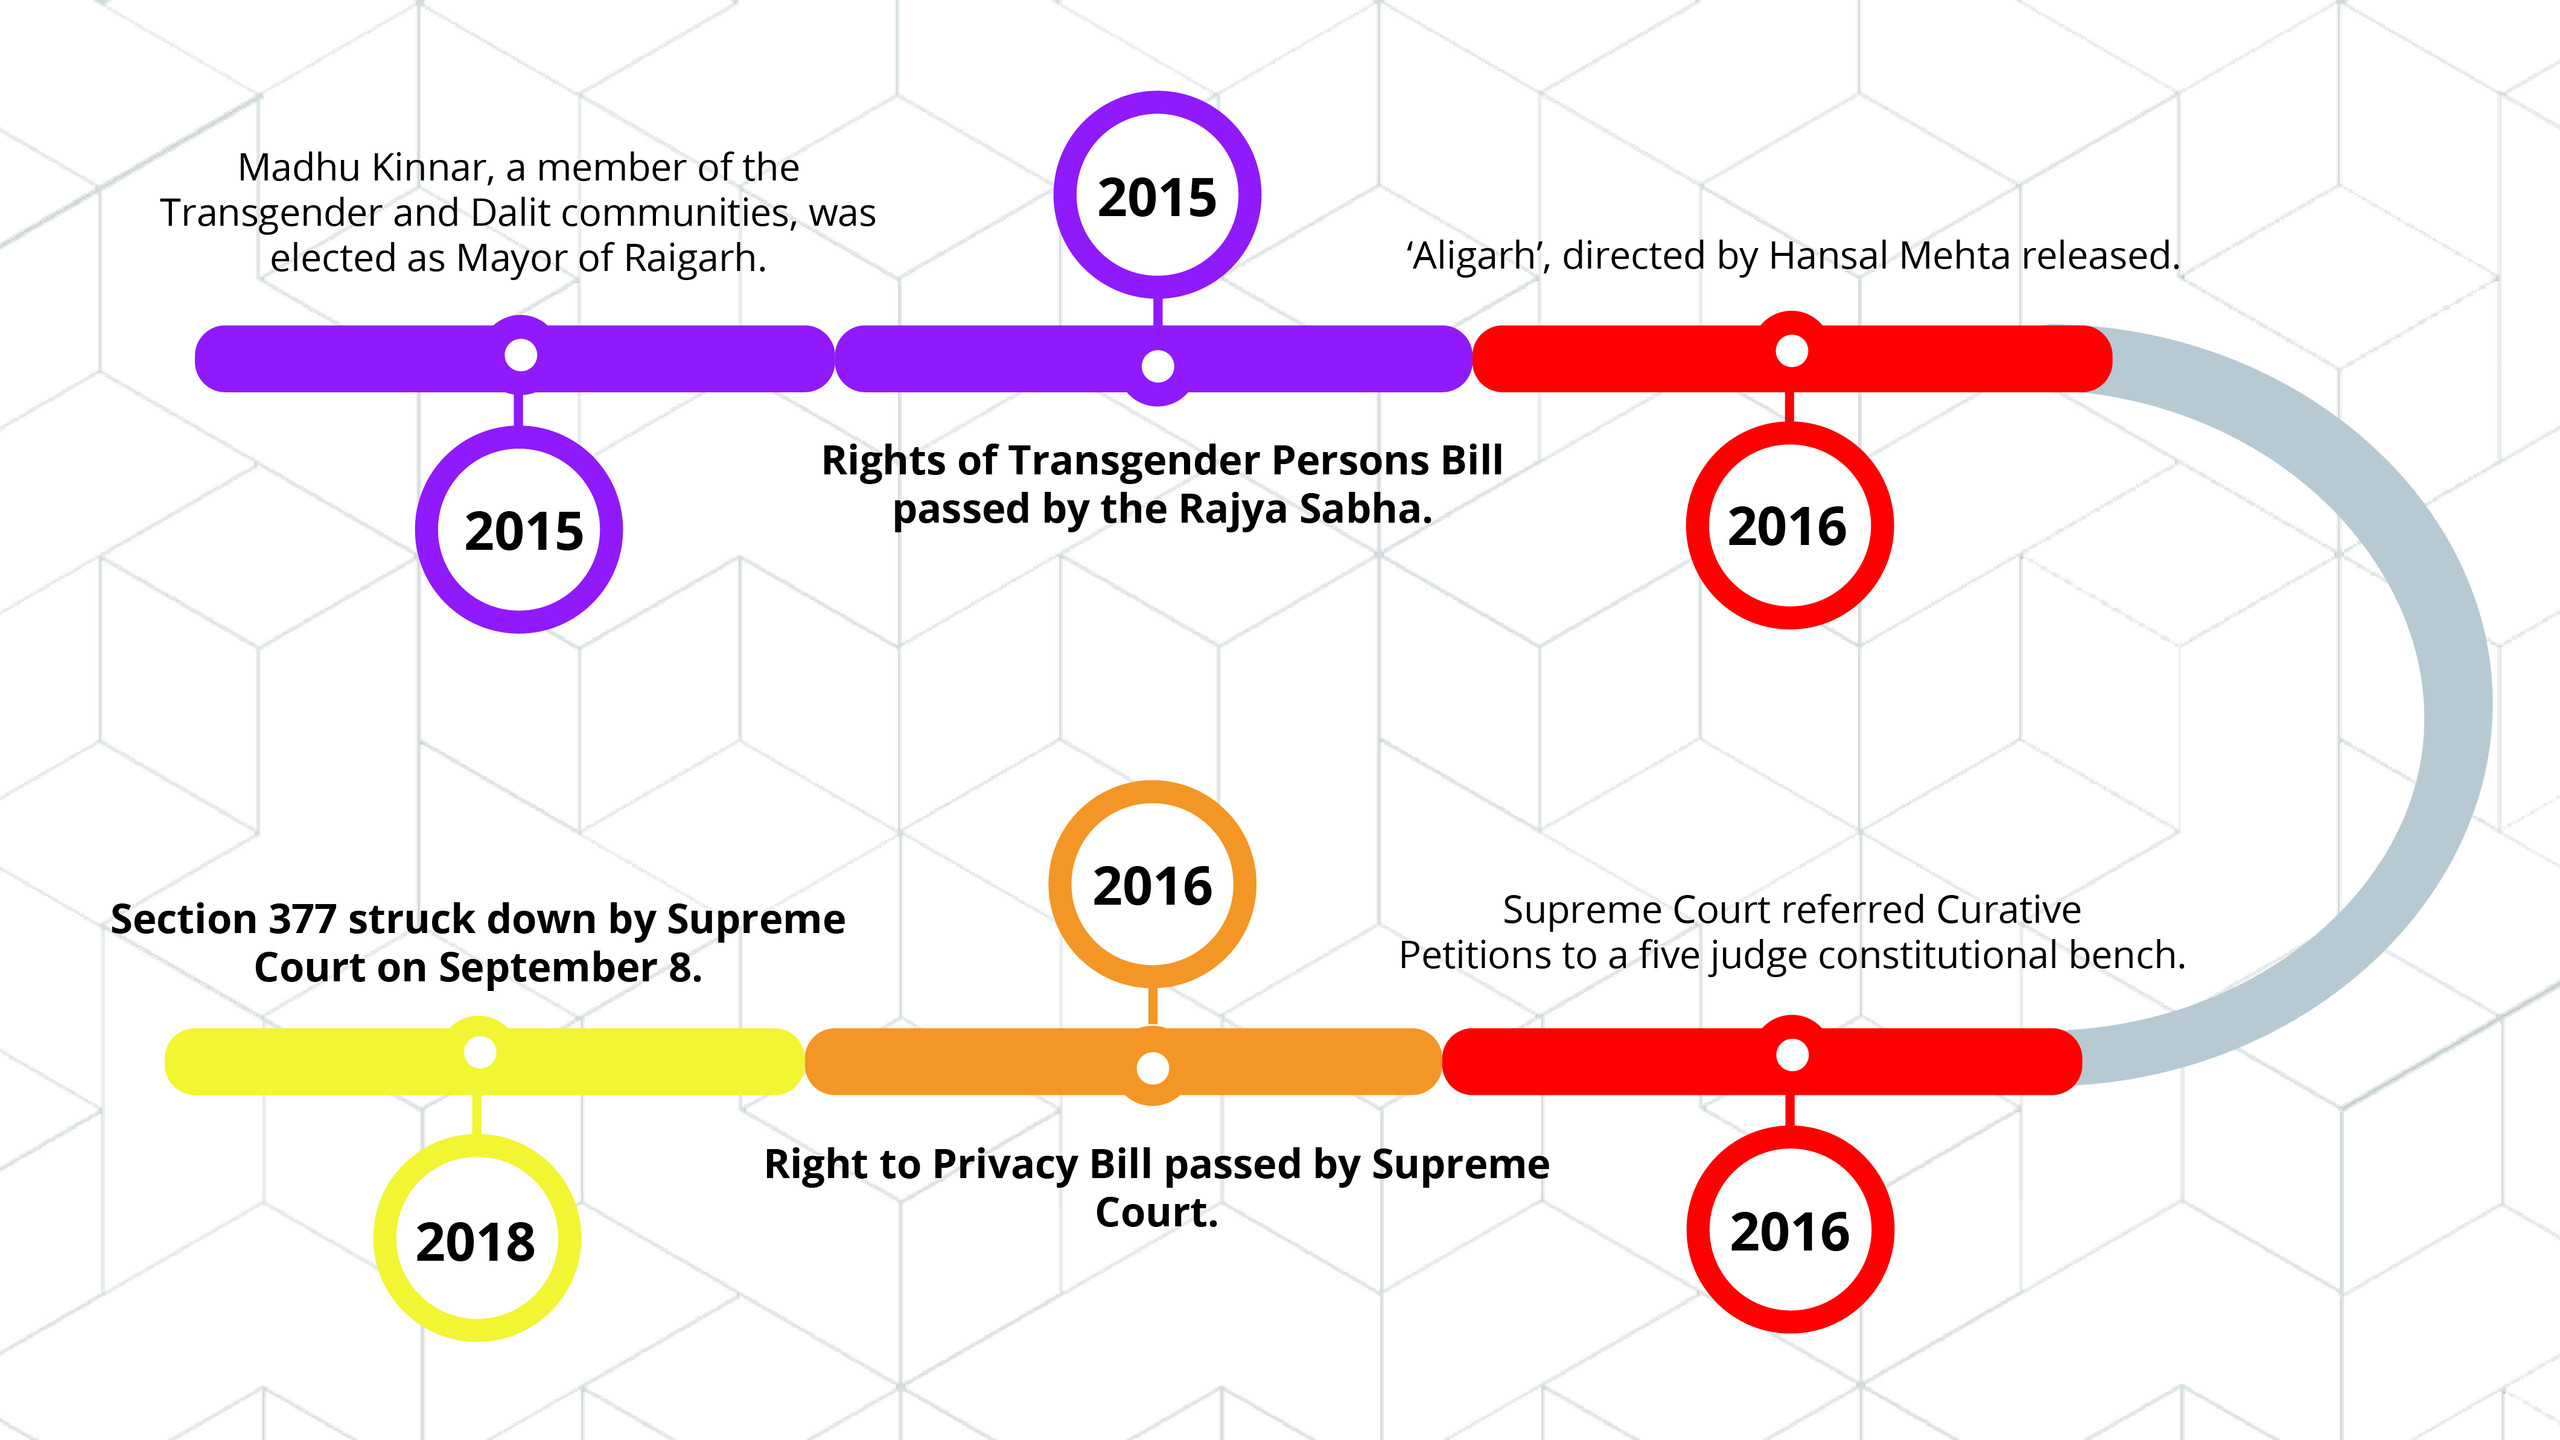 This timeline highlights key events that have taken place in the journey to the Supreme Court striking down Section 377.